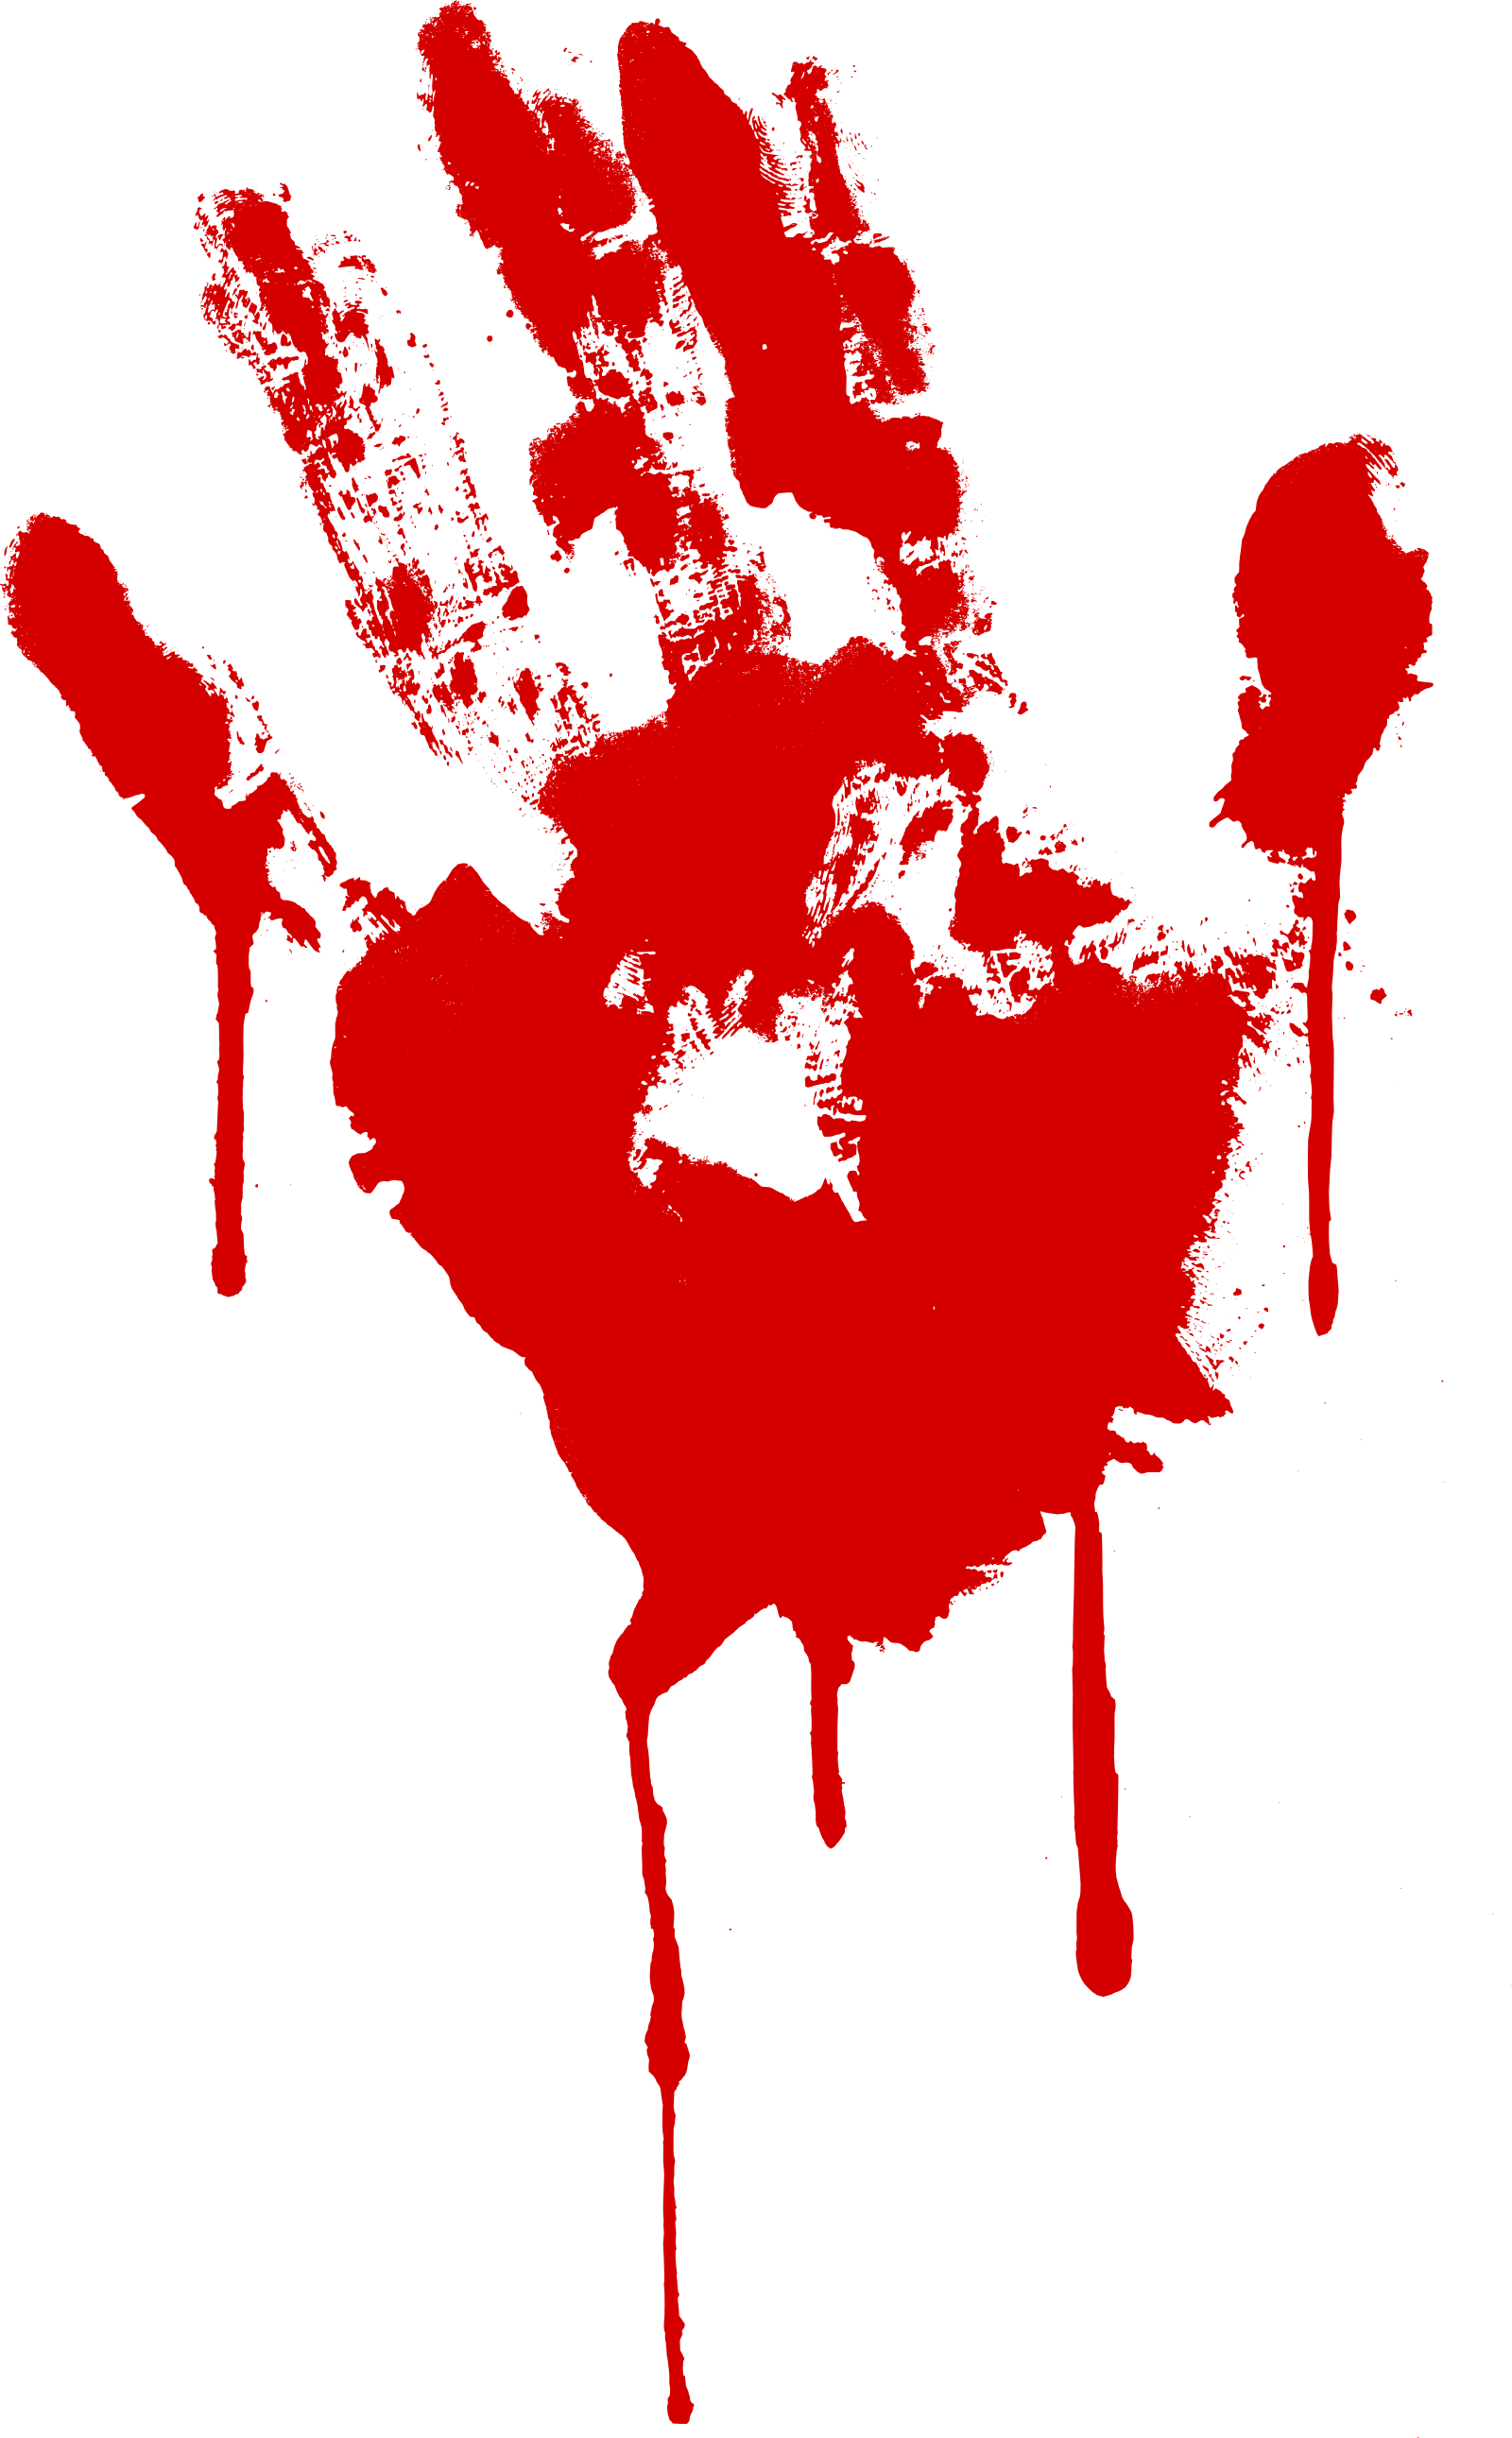 Free photo bloody hand. Handprint clipart paint